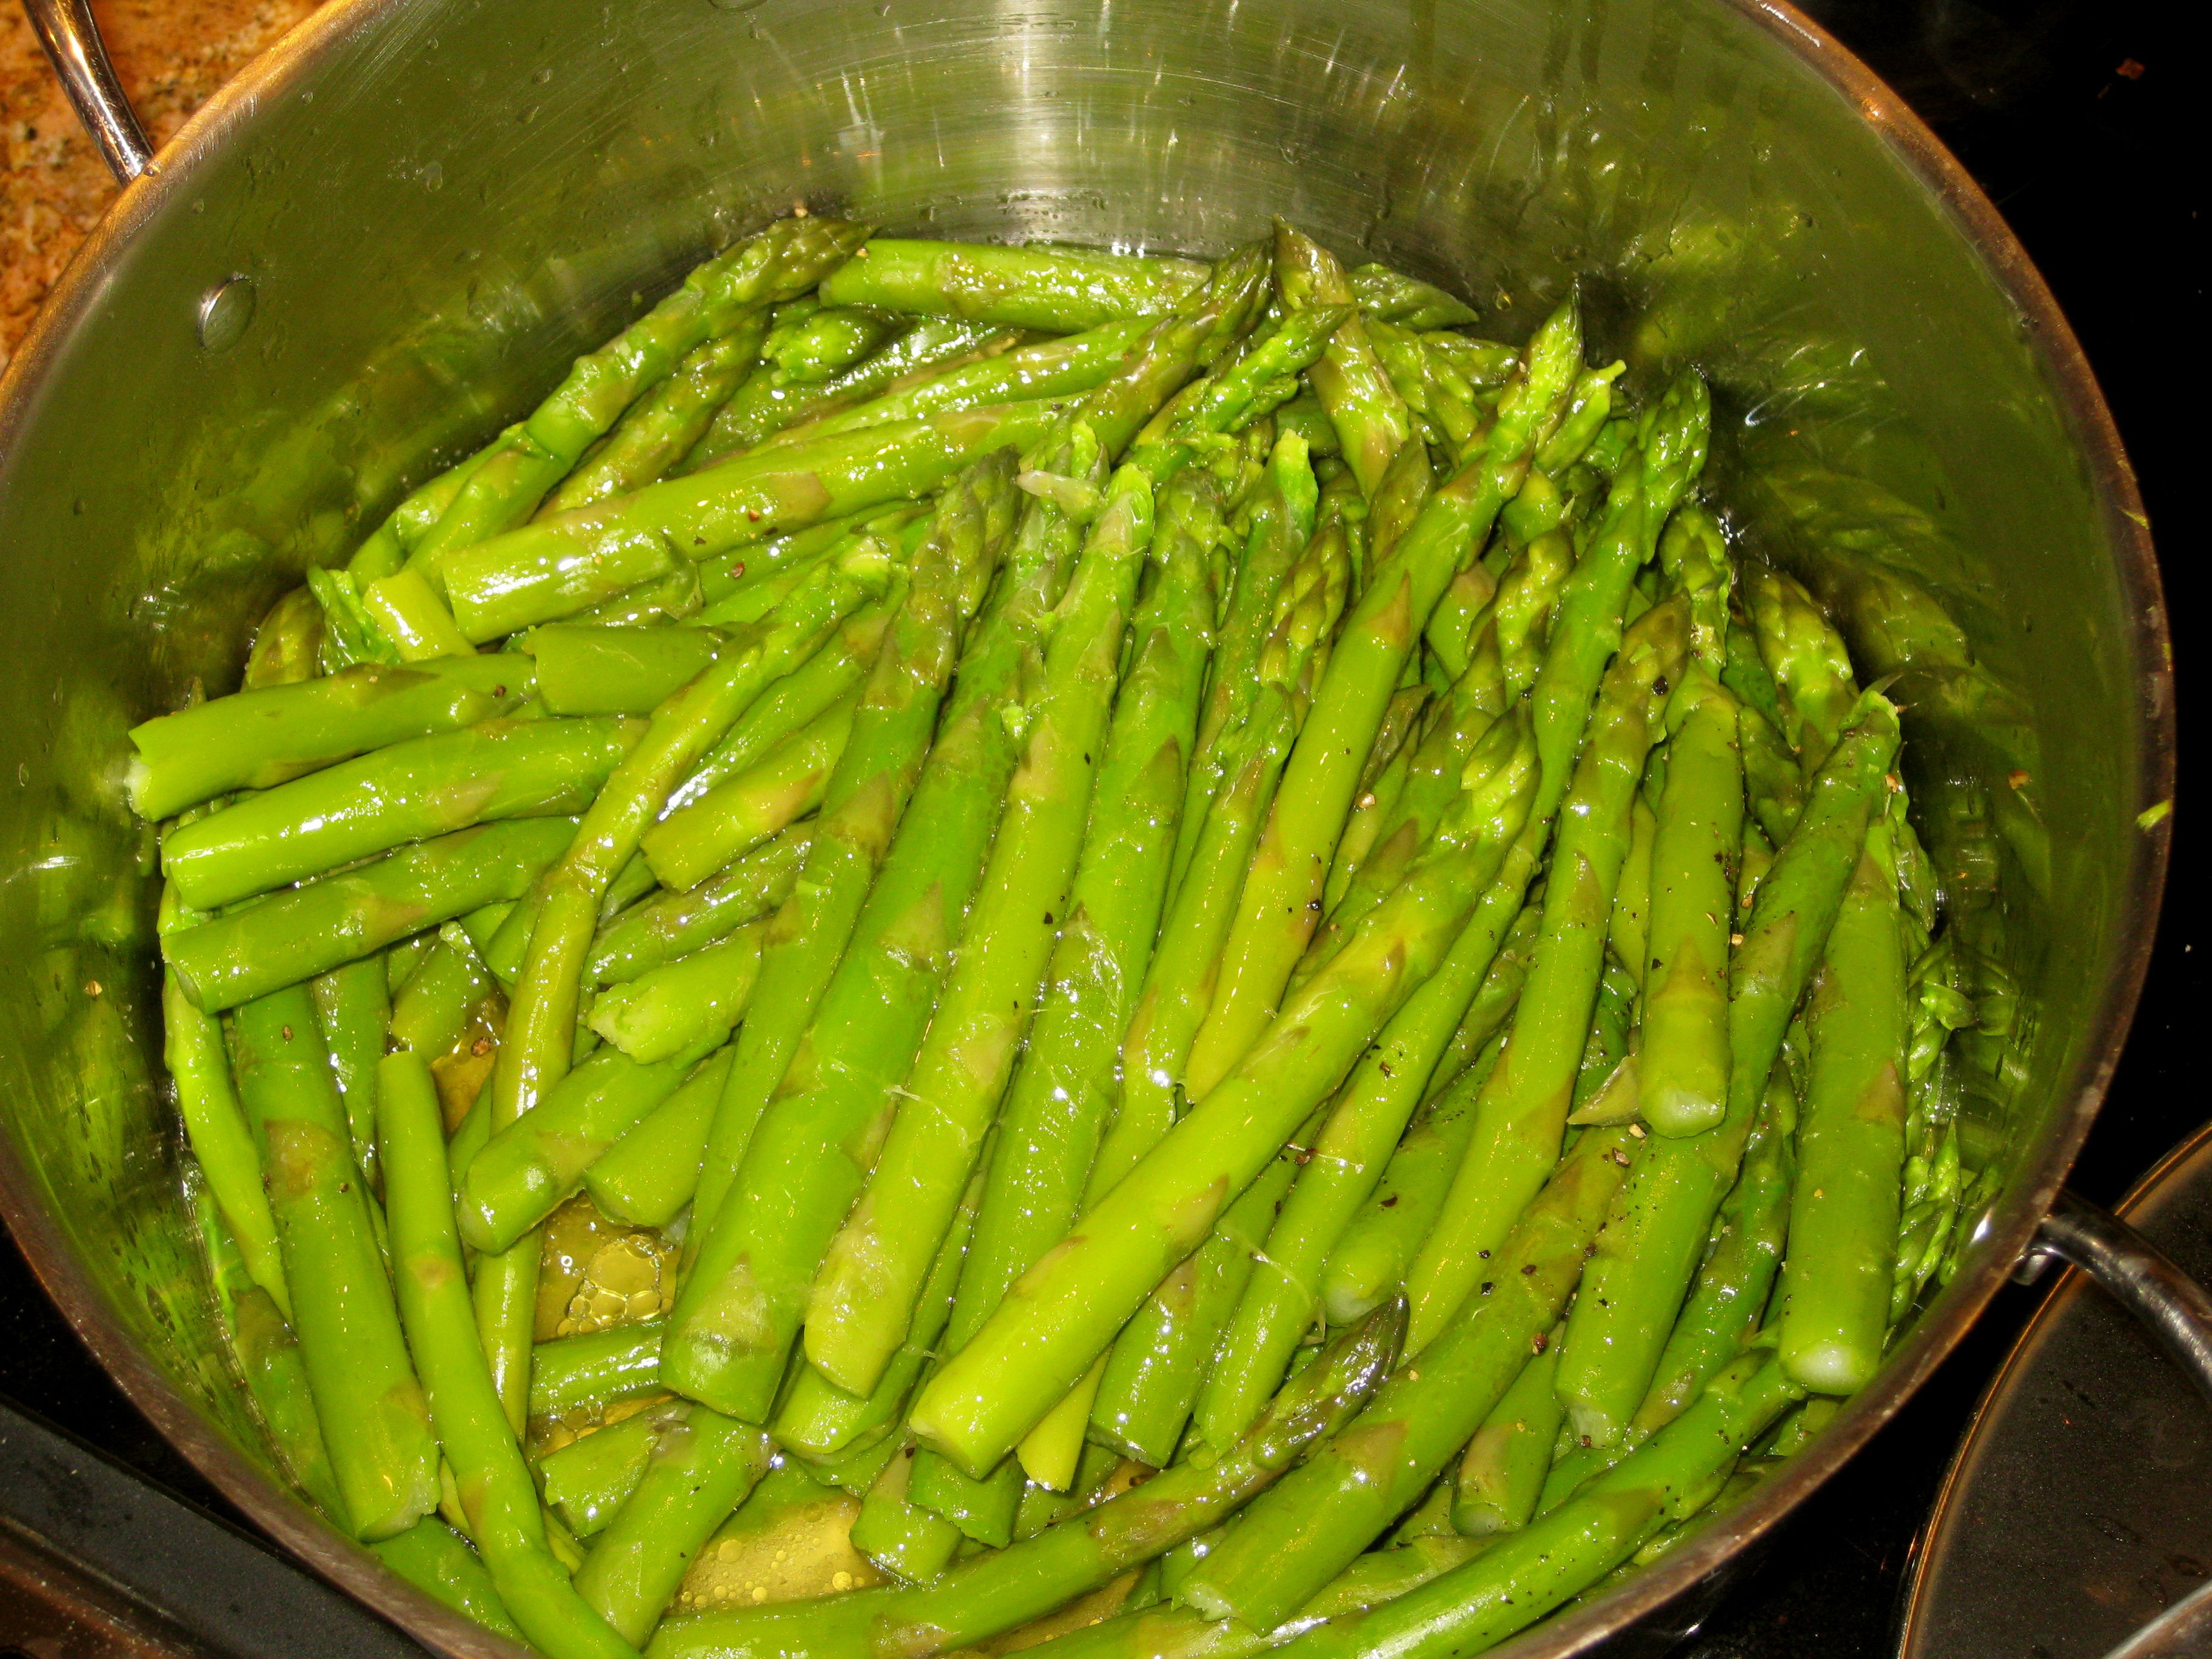 Cooking Asparagus Isn't Difficult And It Can Be Cooked In A Variety Of  Different Ways I Like Them Steamed Or Saut�ed But Most People Cook Them By  Boiling